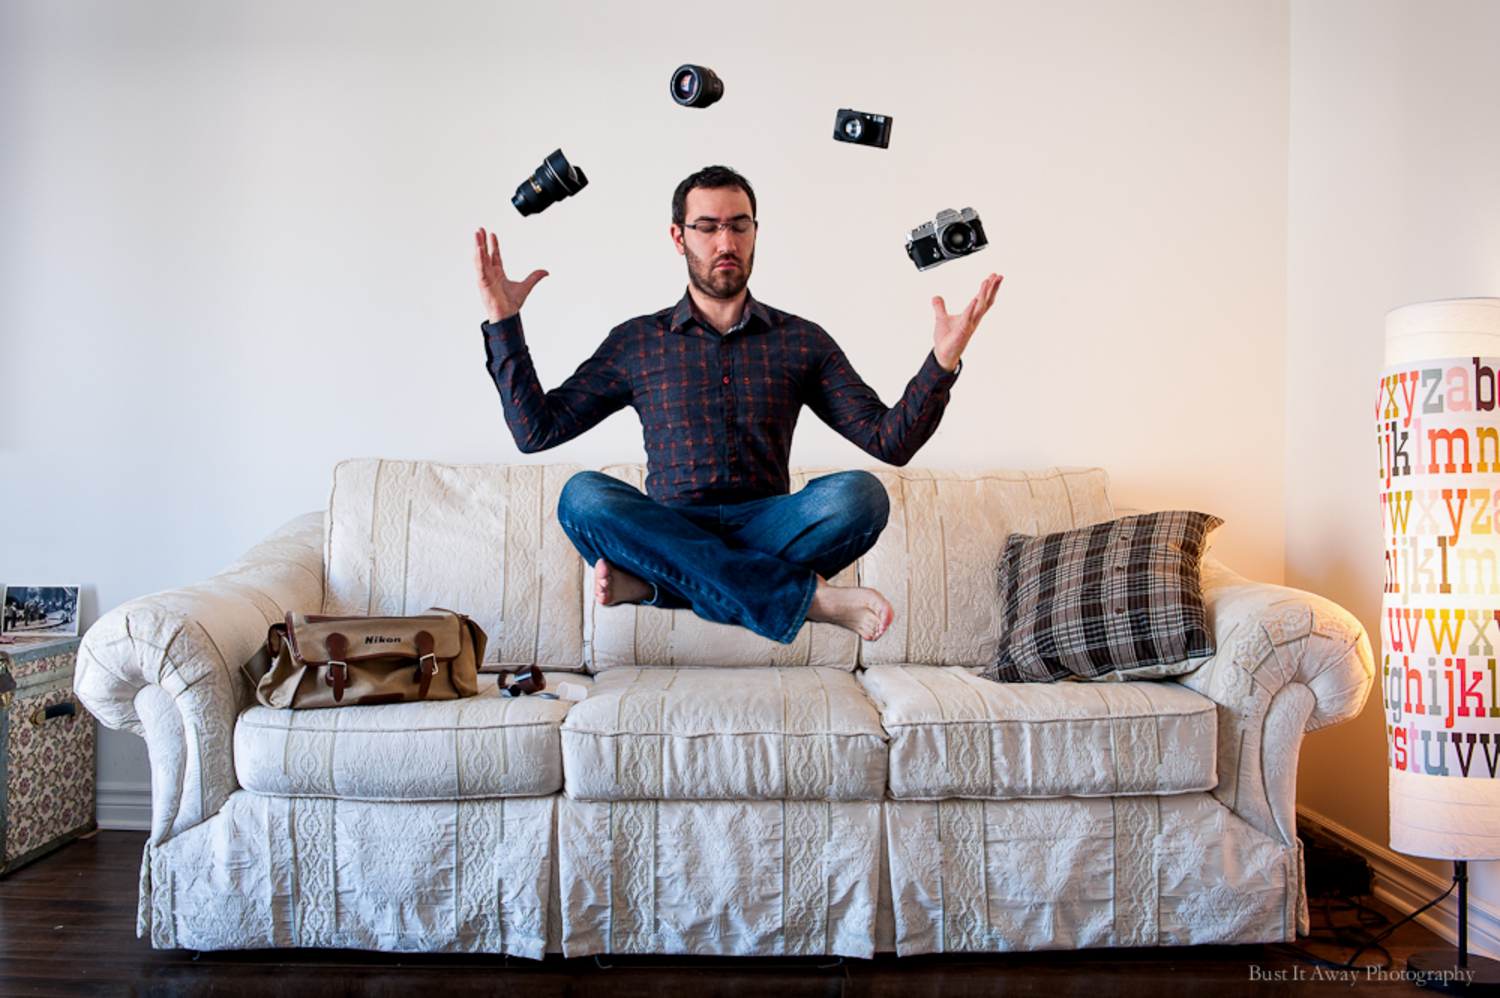 Weirdest New Gadget: A Levitating Speaker